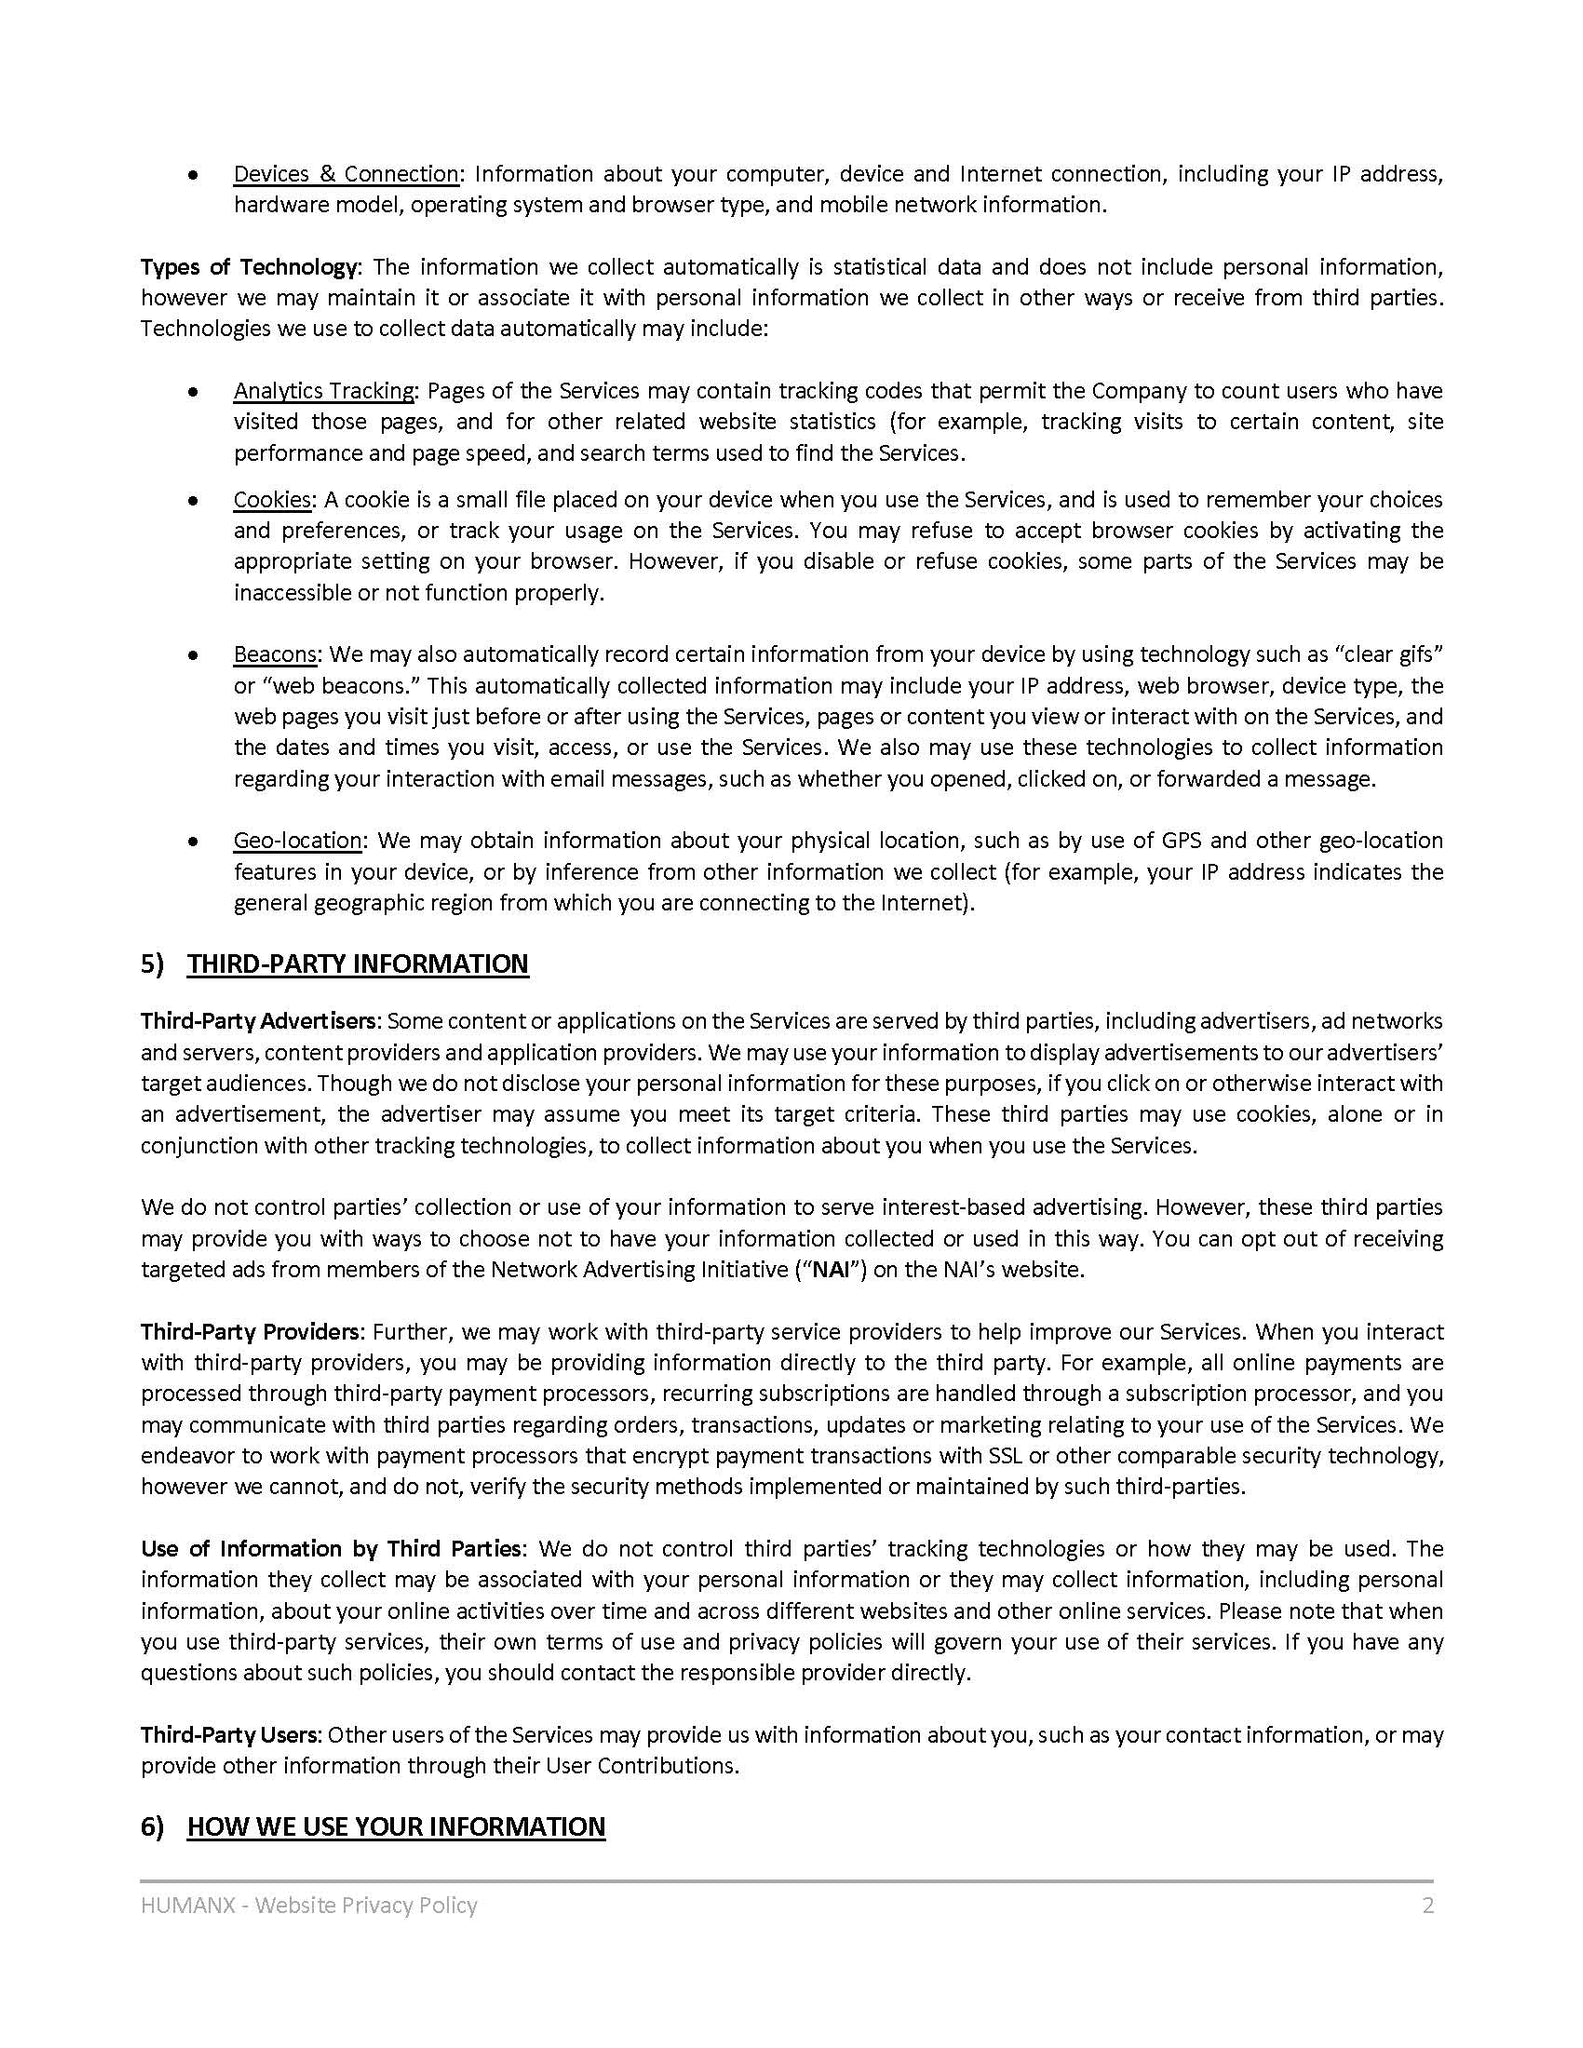 Privacy Policy - Page 2